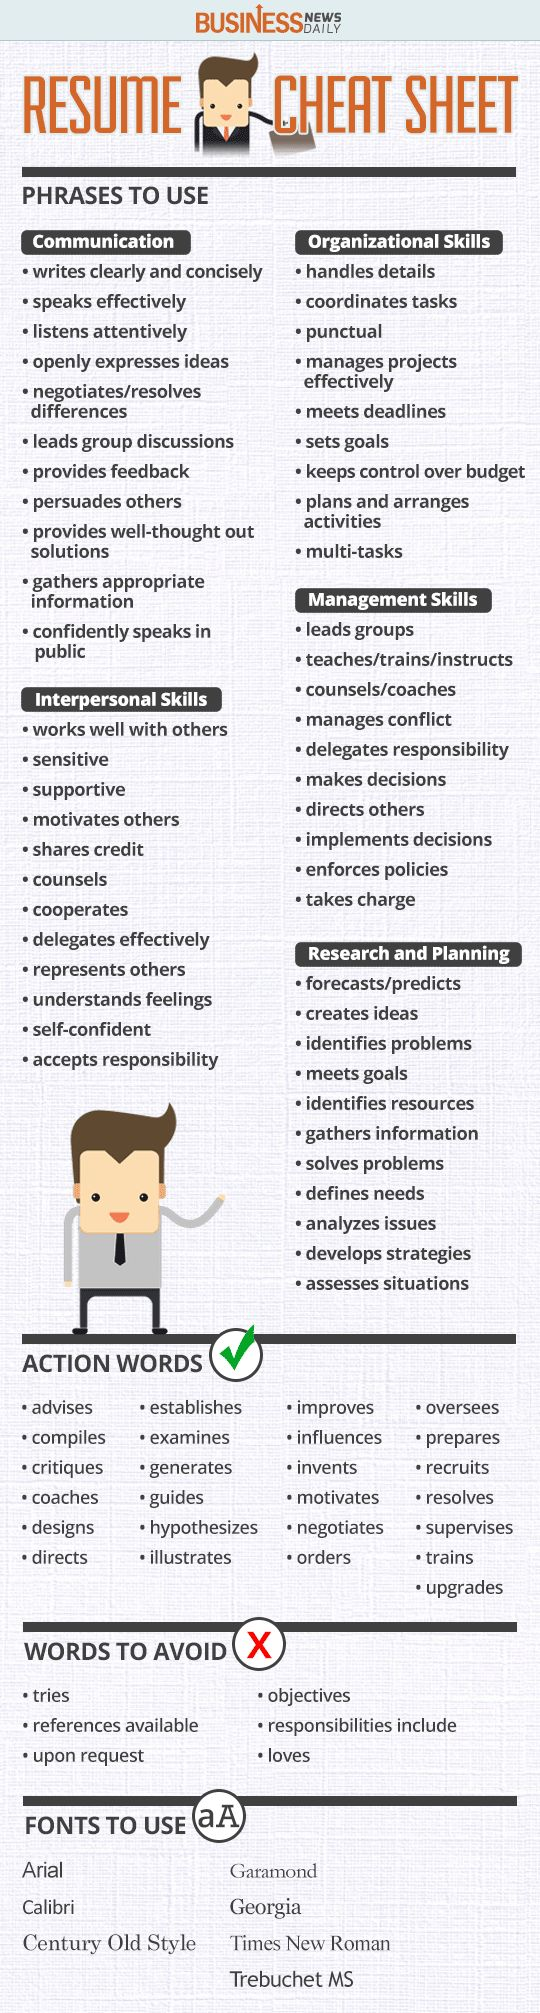 Opposenewapstandardsus  Winning  Ideas About Resume On Pinterest  Cv Format Resume Cv And  With Luxury Resume Cheat Sheet Infographic Andrews Almost Done With A Complete Unit On Employment Which With Lovely Law Resume Also Skills To Have On A Resume In Addition Elementary Teacher Resume Examples And How To End A Resume As Well As No Job Experience Resume Additionally Resume Writer Service From Pinterestcom With Opposenewapstandardsus  Luxury  Ideas About Resume On Pinterest  Cv Format Resume Cv And  With Lovely Resume Cheat Sheet Infographic Andrews Almost Done With A Complete Unit On Employment Which And Winning Law Resume Also Skills To Have On A Resume In Addition Elementary Teacher Resume Examples From Pinterestcom